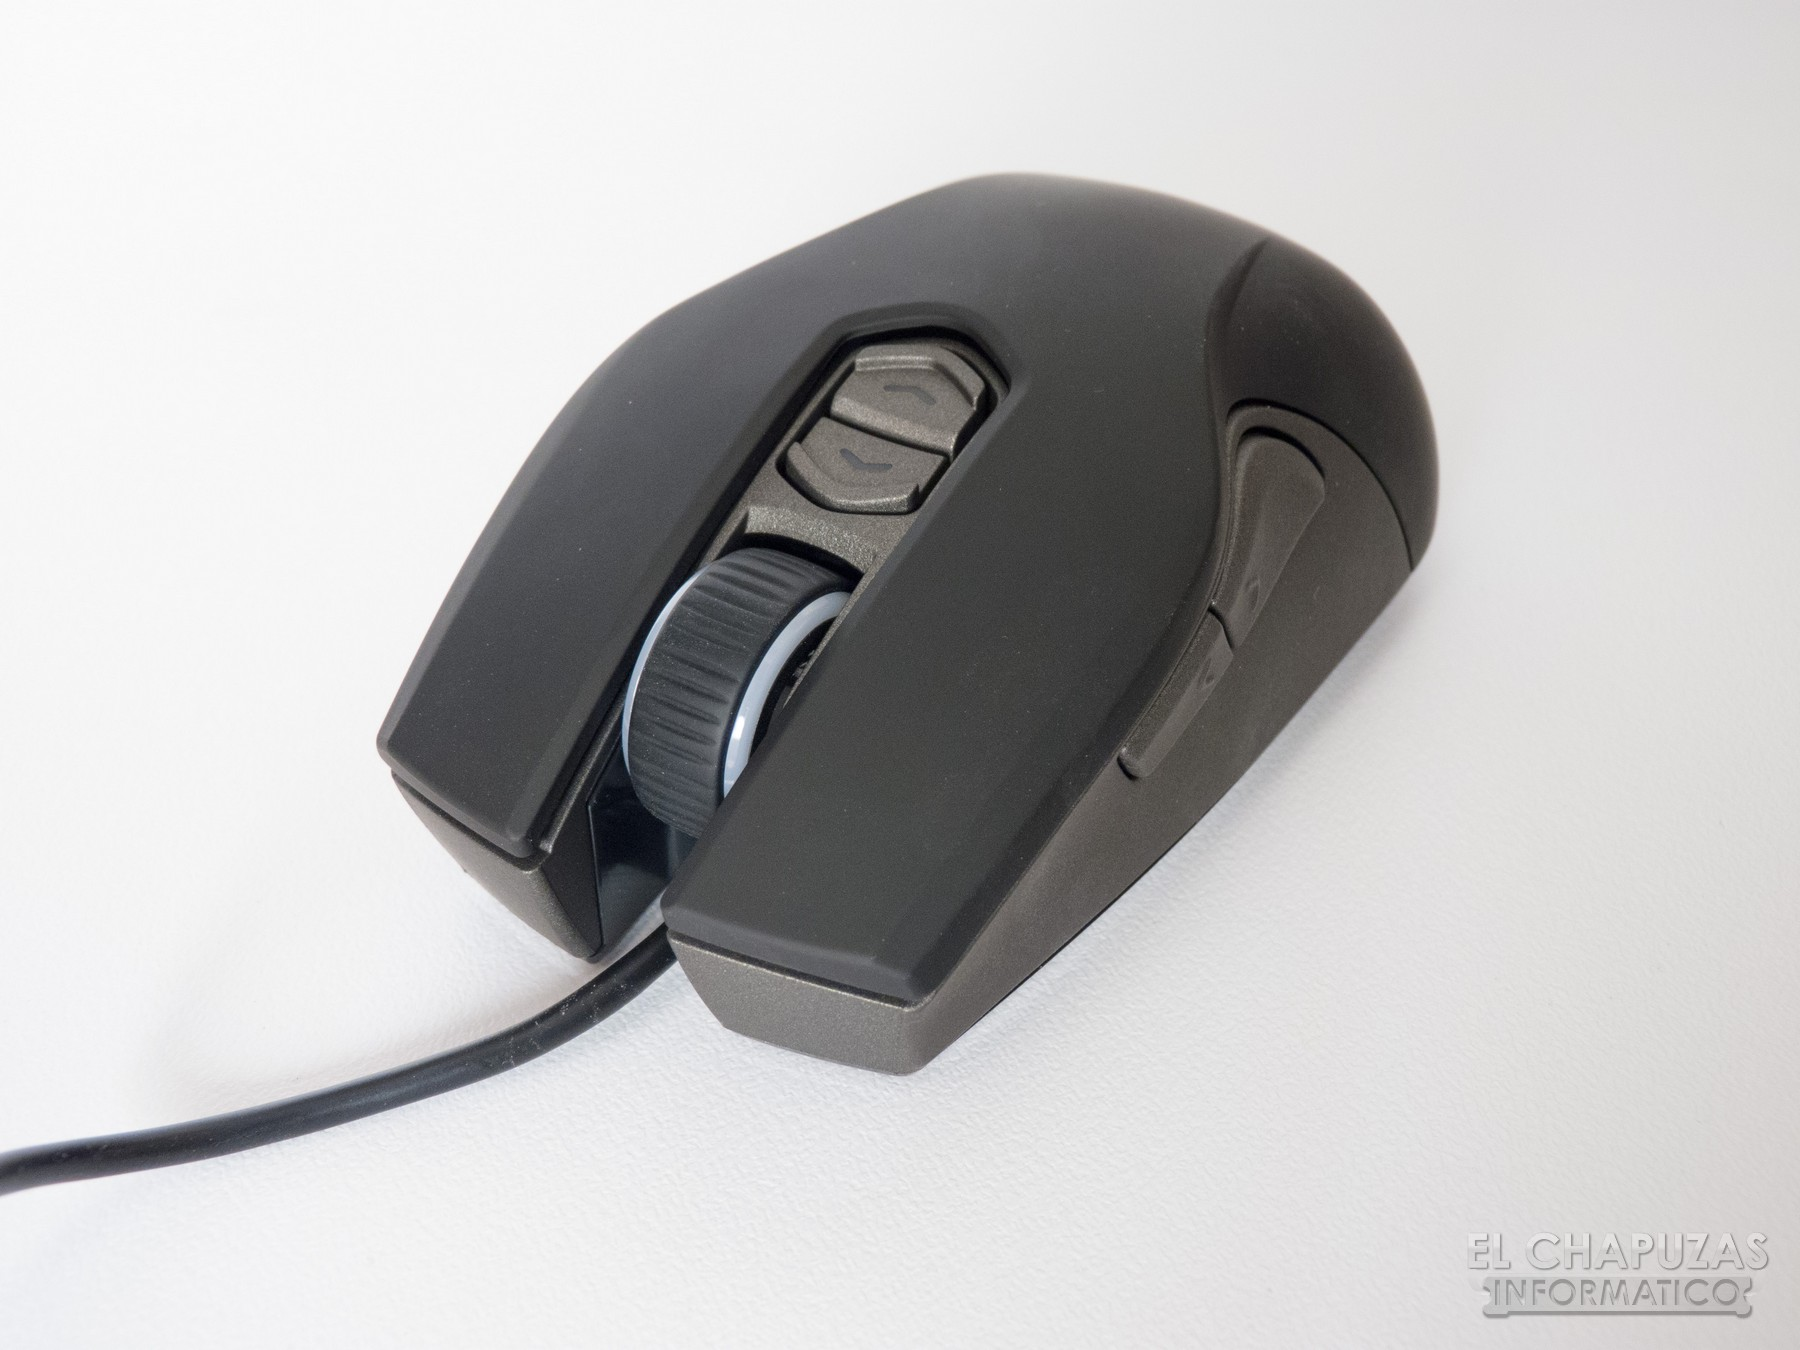 Review: Cooler Master CM Storm Recon